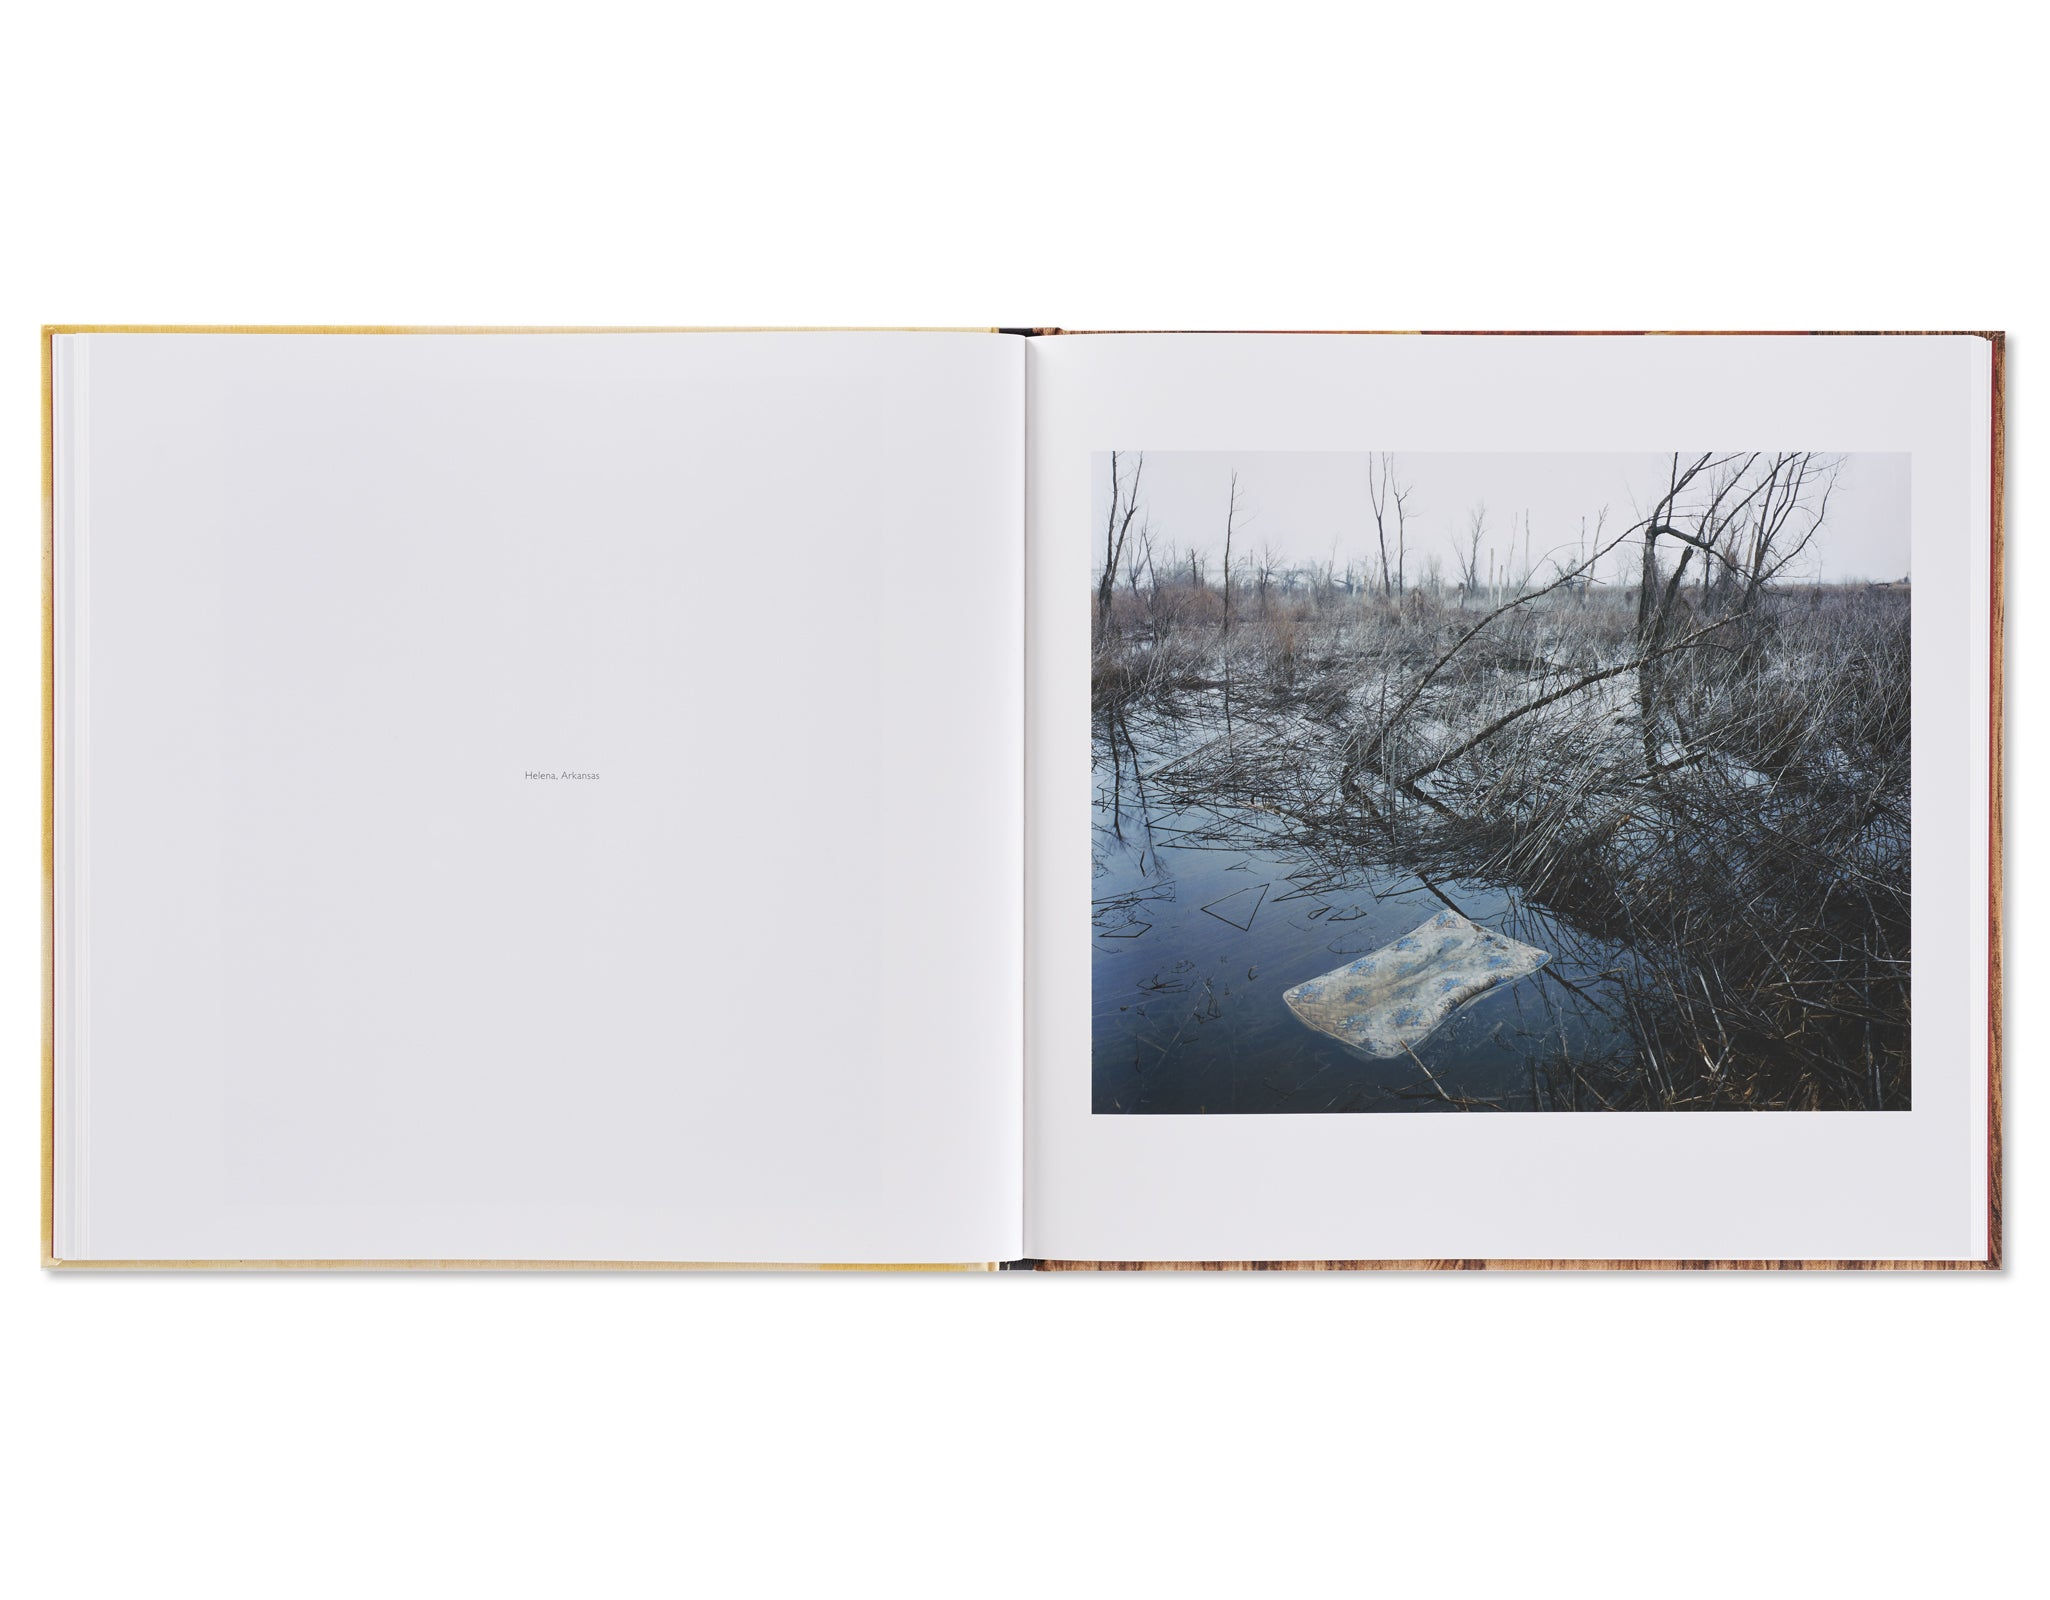 SLEEPING BY THE MISSISSIPPI by Alec Soth